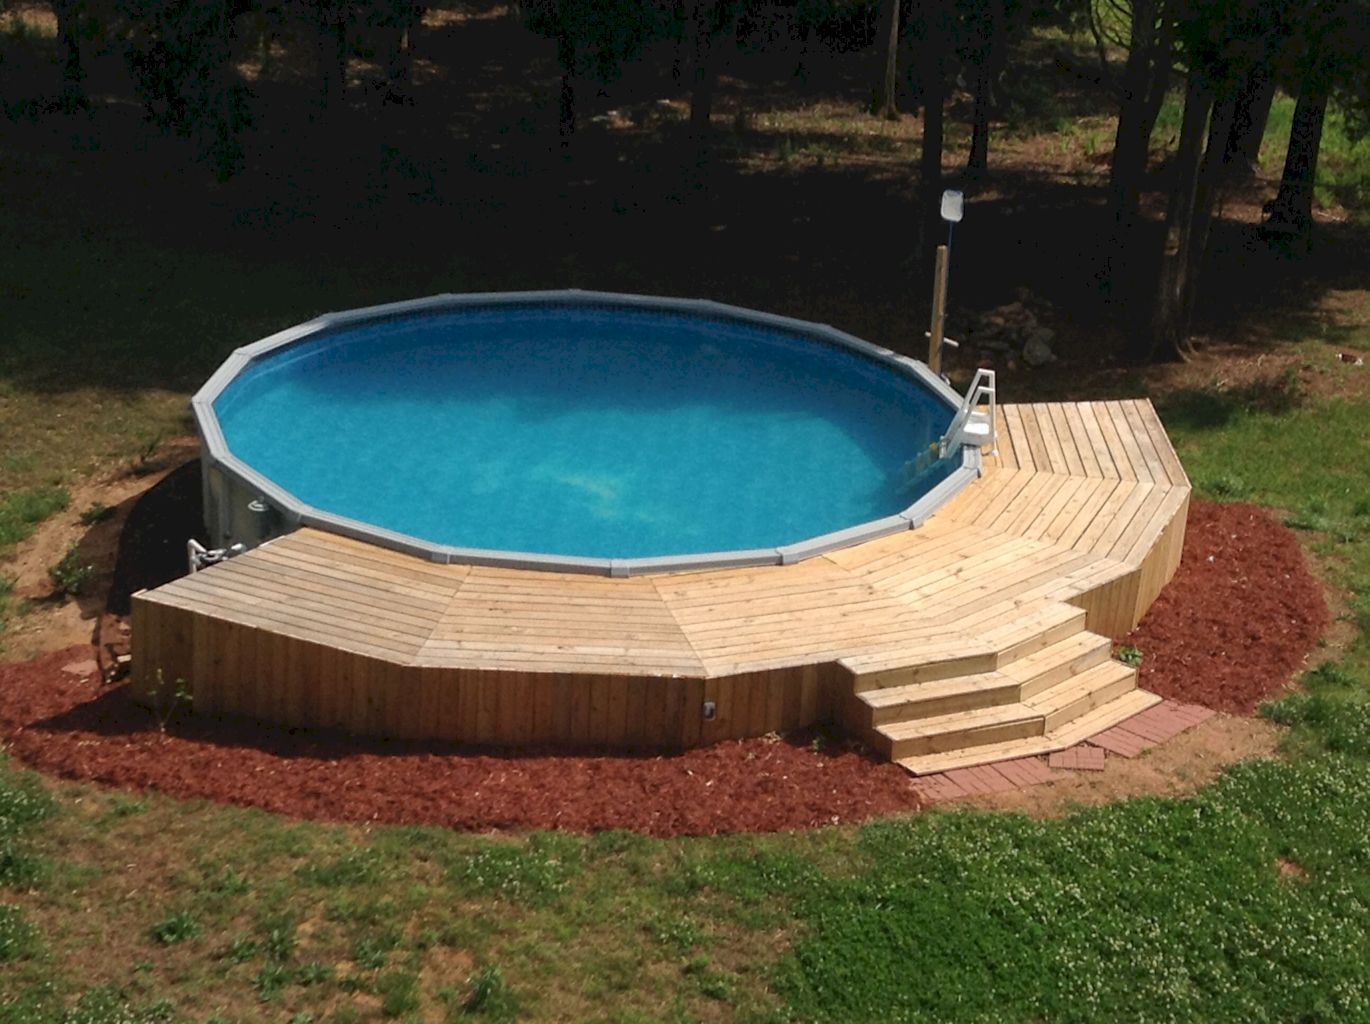 Simple pool designs built above ground designed with cheap materials for simple outdoor relieves Image 20